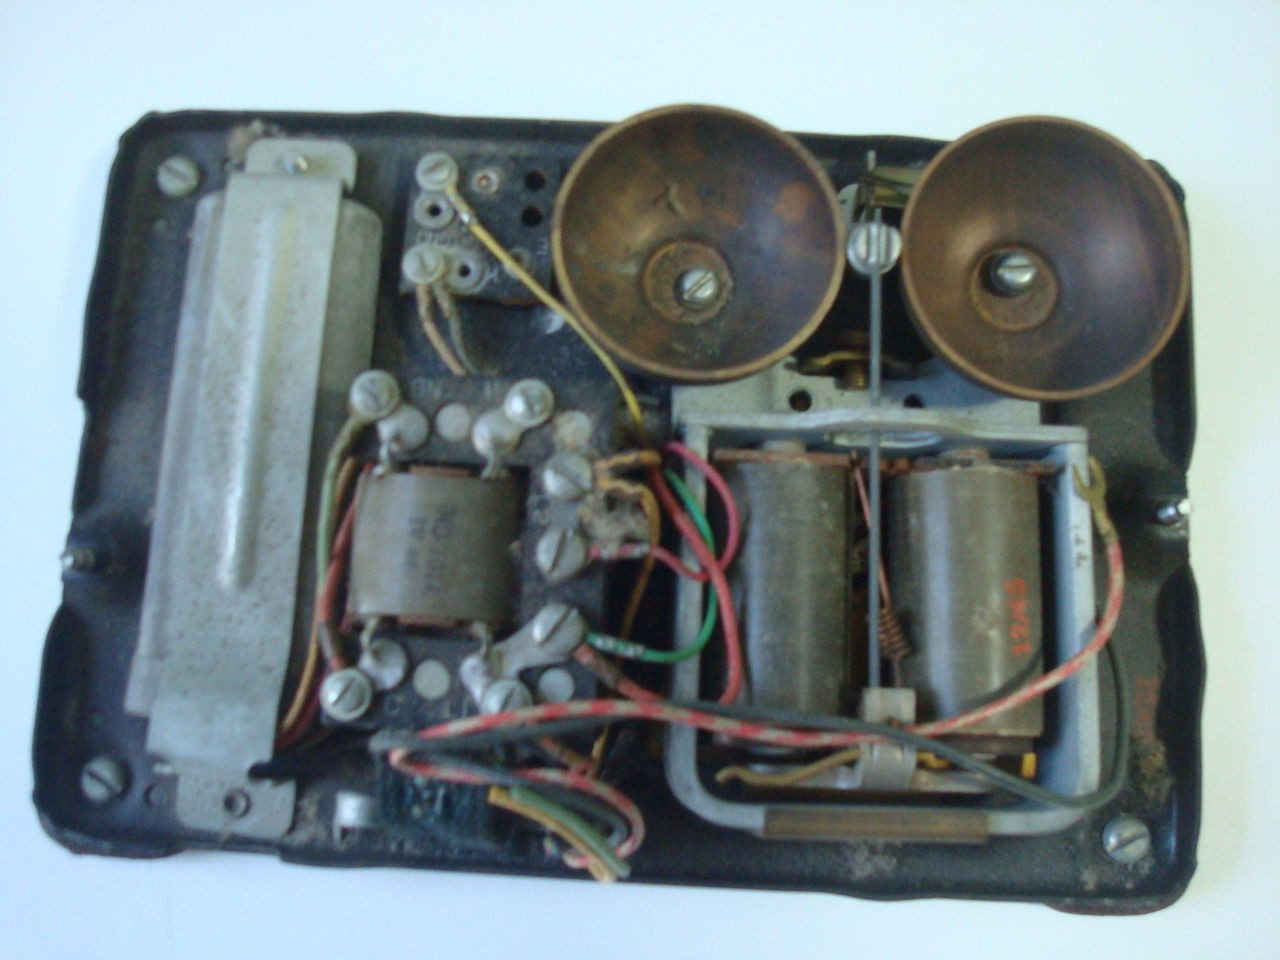 Western Electric 302 Telephone Wiring Diagram. Western Electric 302 on